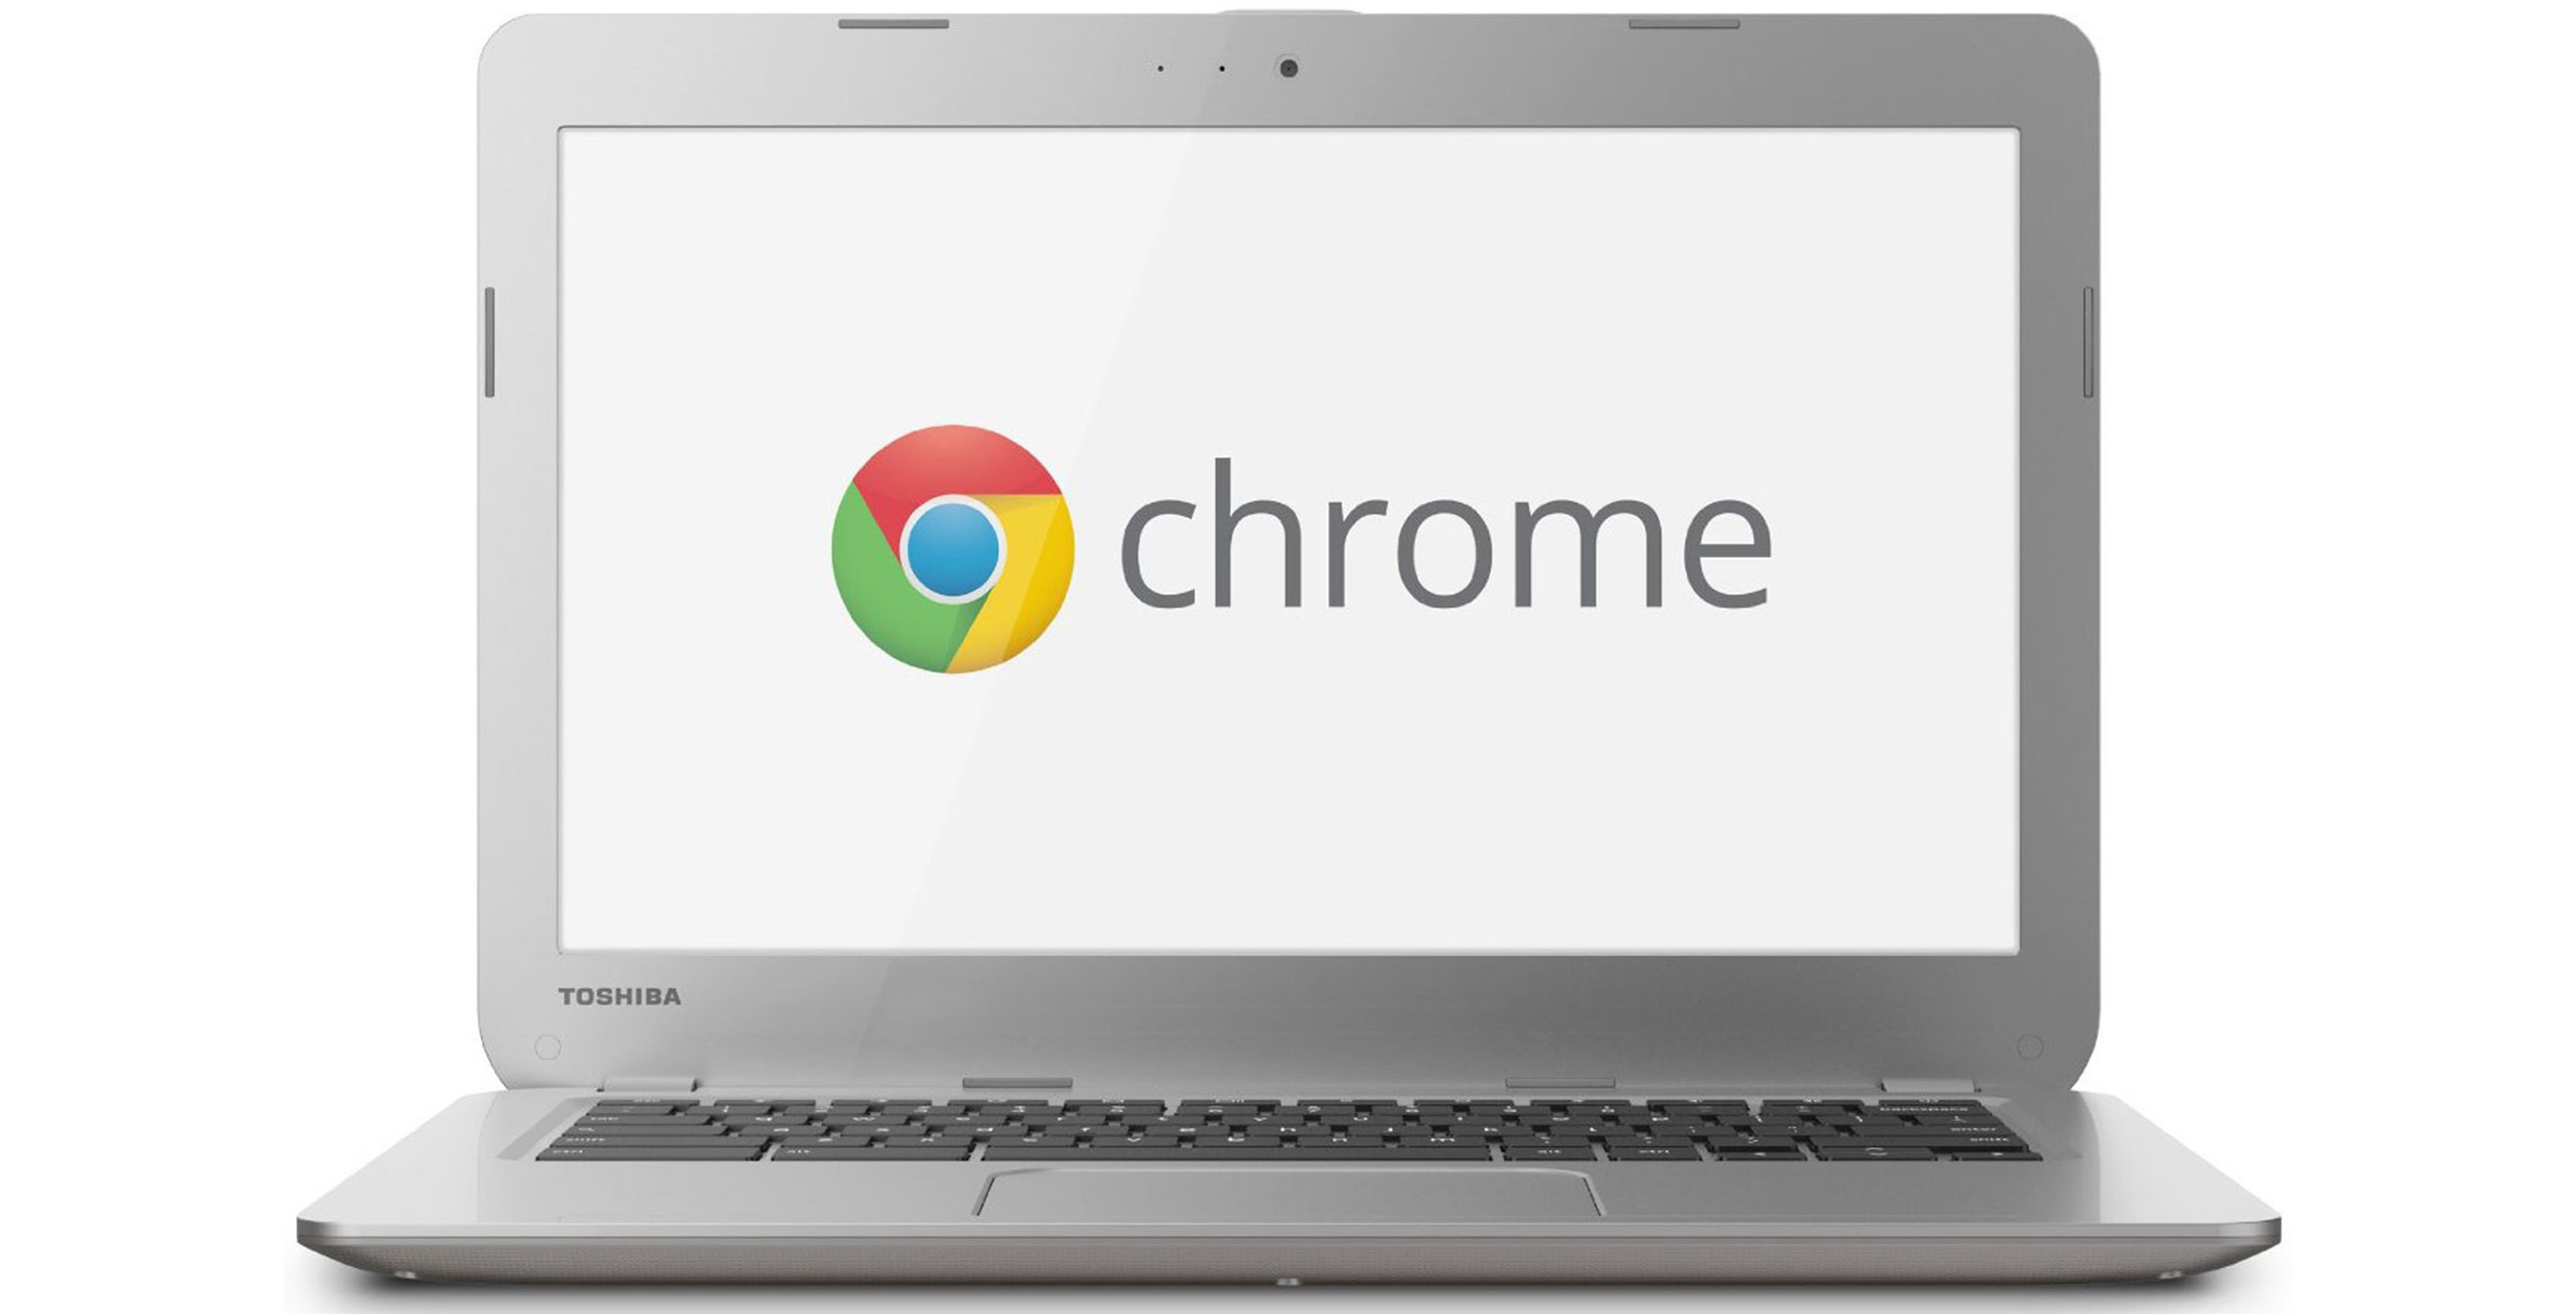 Google Chromebook design